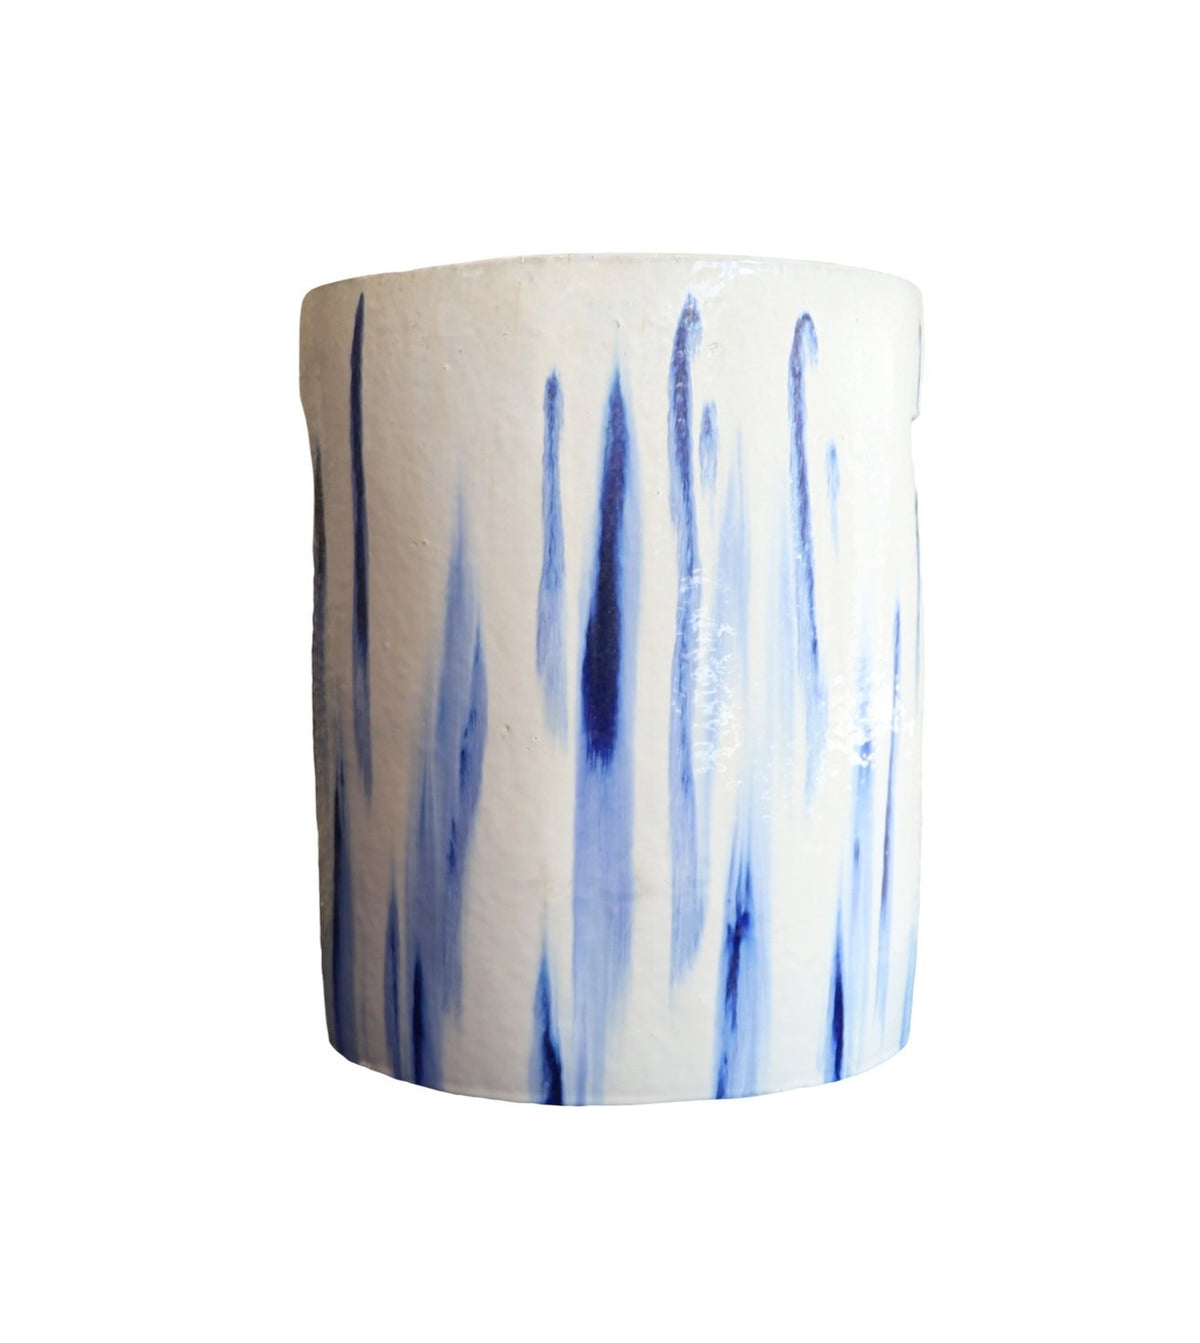 Cylinder Stool in White and Blue Glaze